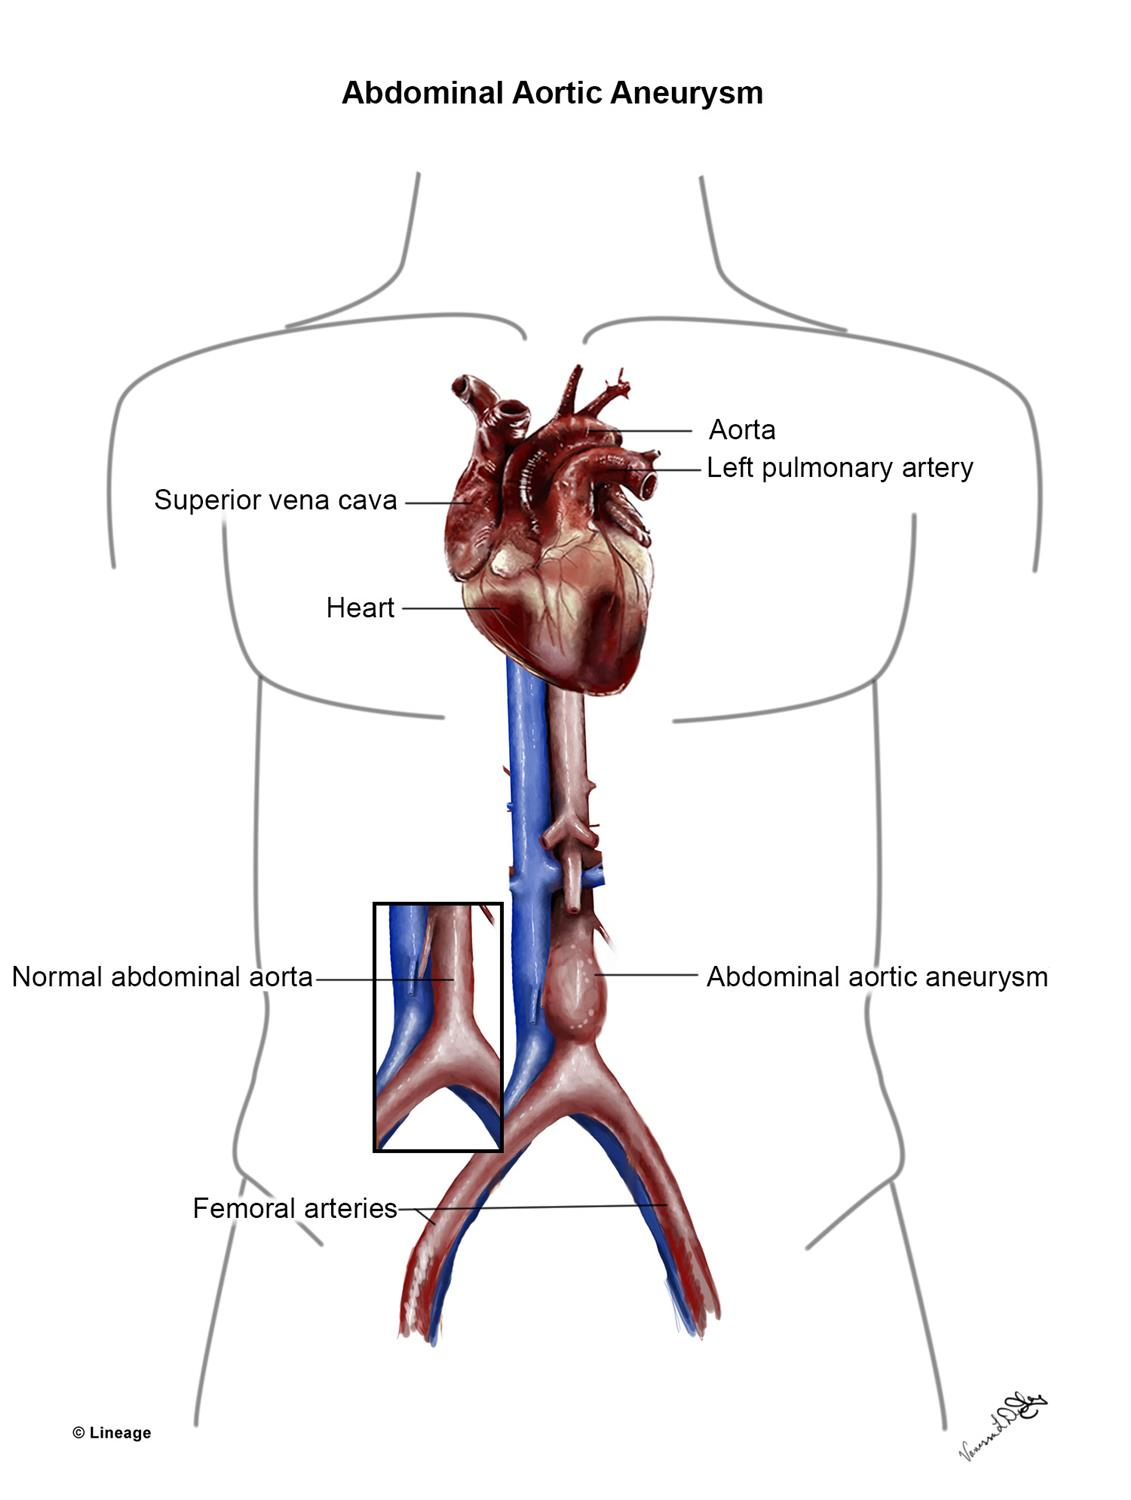 Abdominal Aortic Aneurysm Cardiovascular Medbullets Step 1